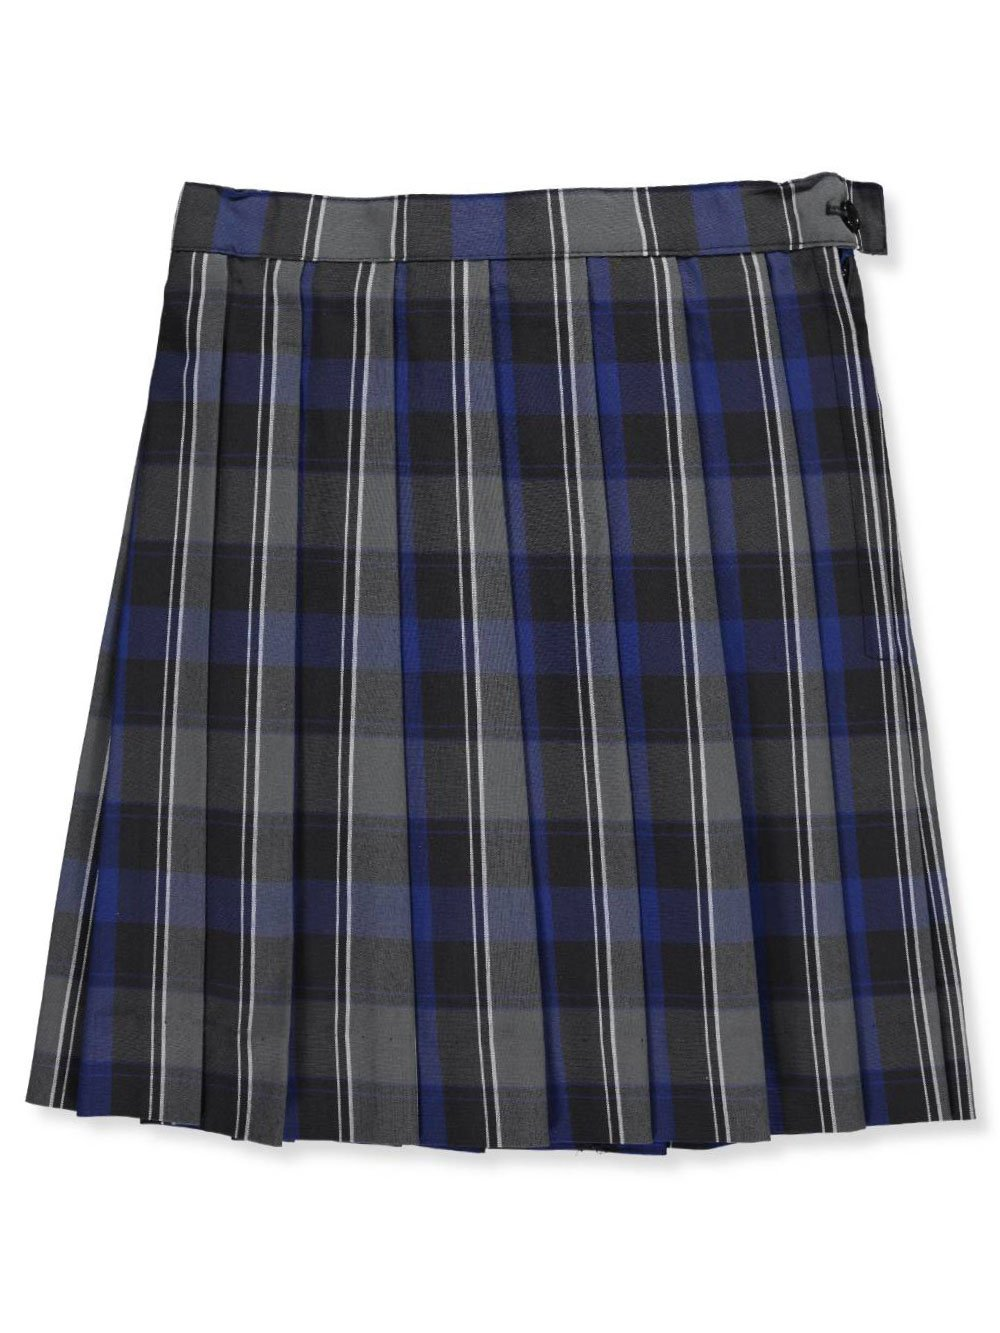 Cookie's Brand Little Girls'Ruby Pleated Skirt - Gray/Royal/whiteplaid